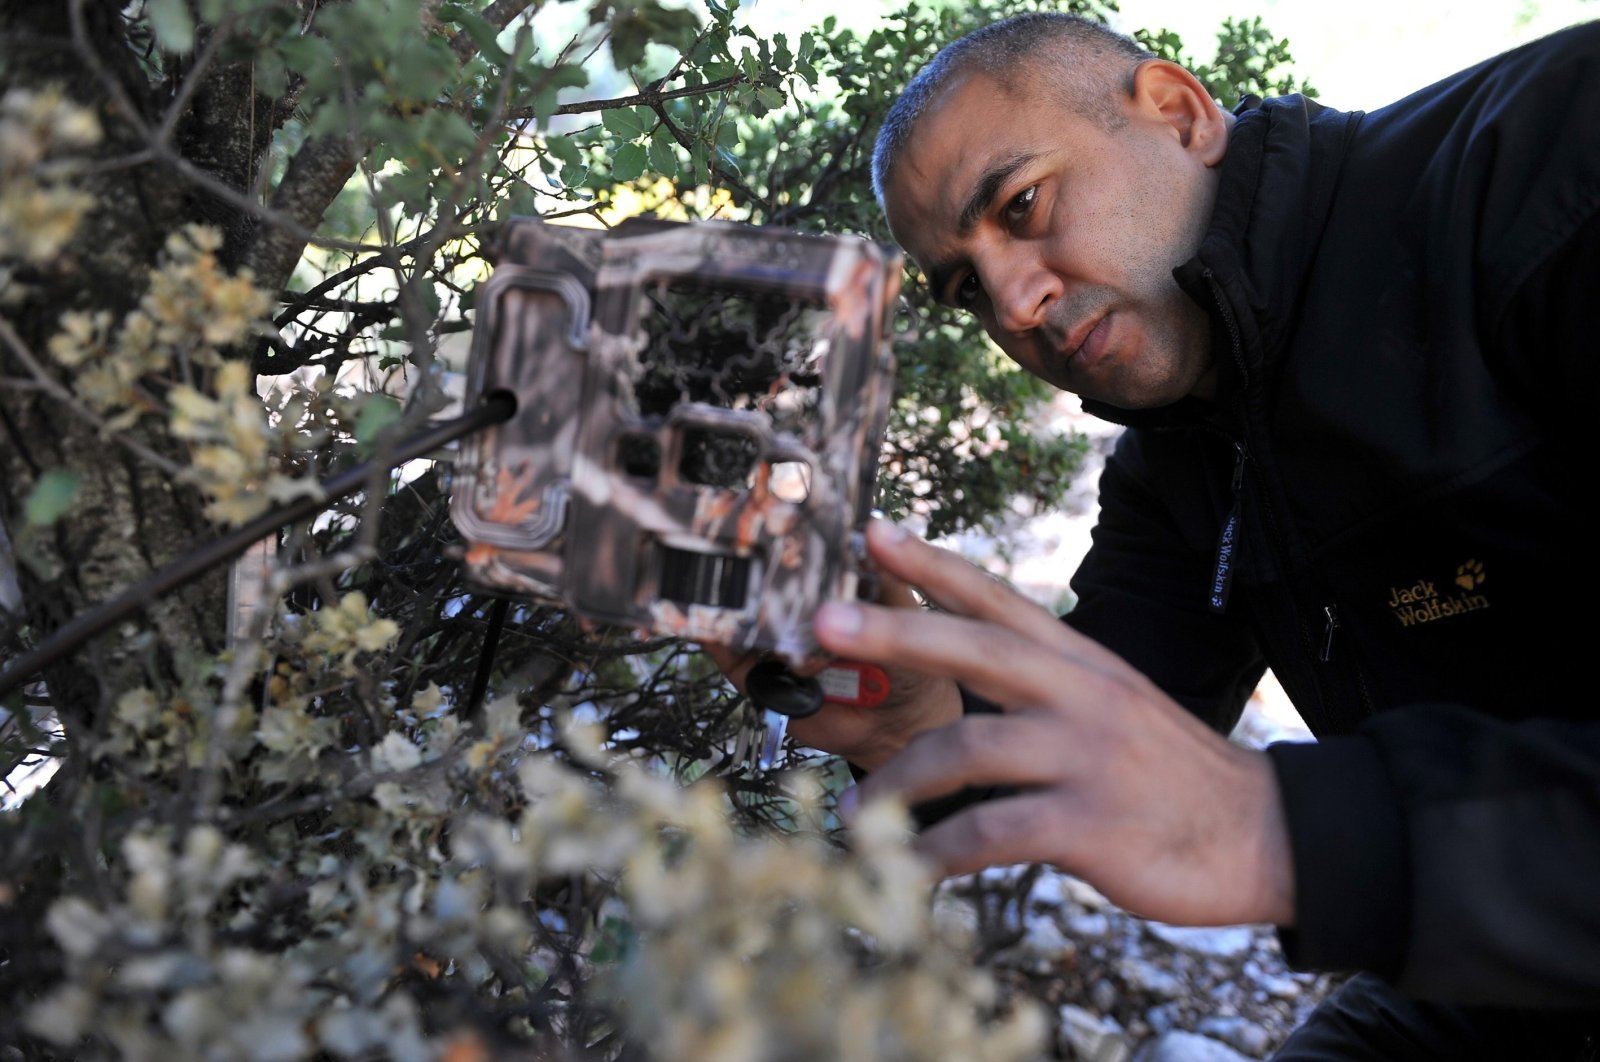 A researcher sets up a camera trap in Antalya, southern Turkey, Oct. 31, 2010. (AA PHOTO)